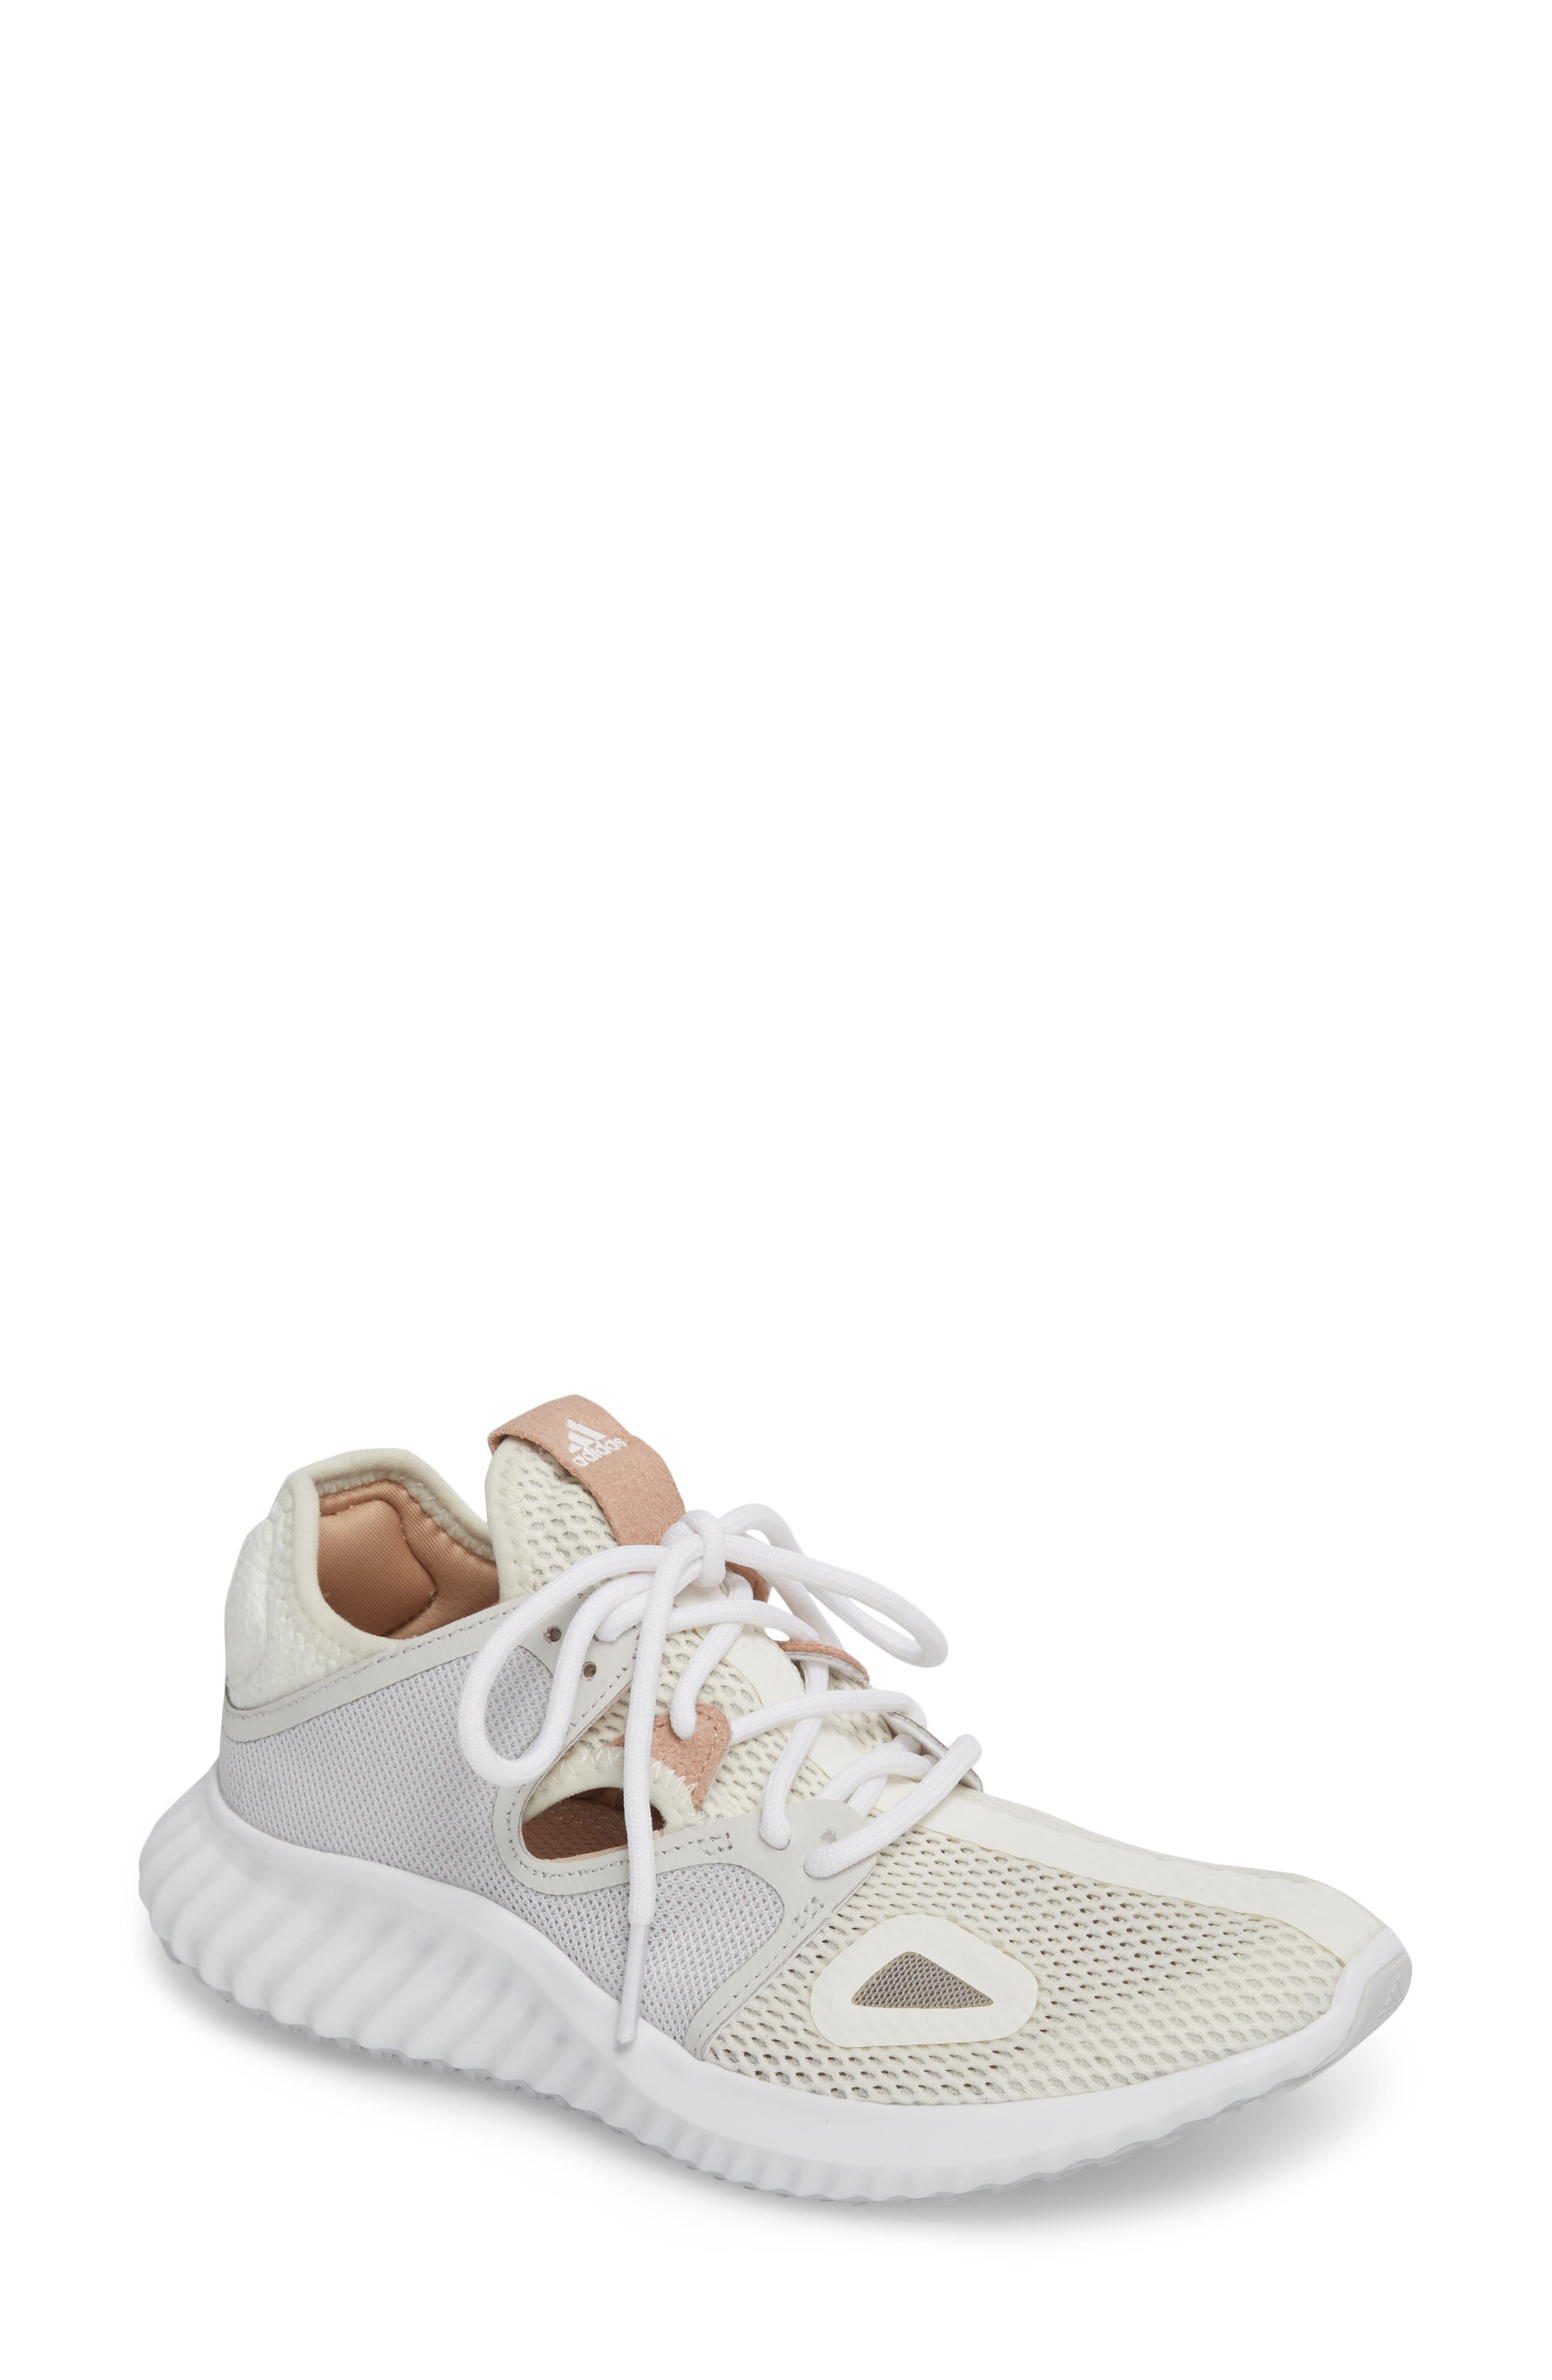 Run Lux Clima Running Shoe,                             Main thumbnail 1, color,                             Off White / Grey